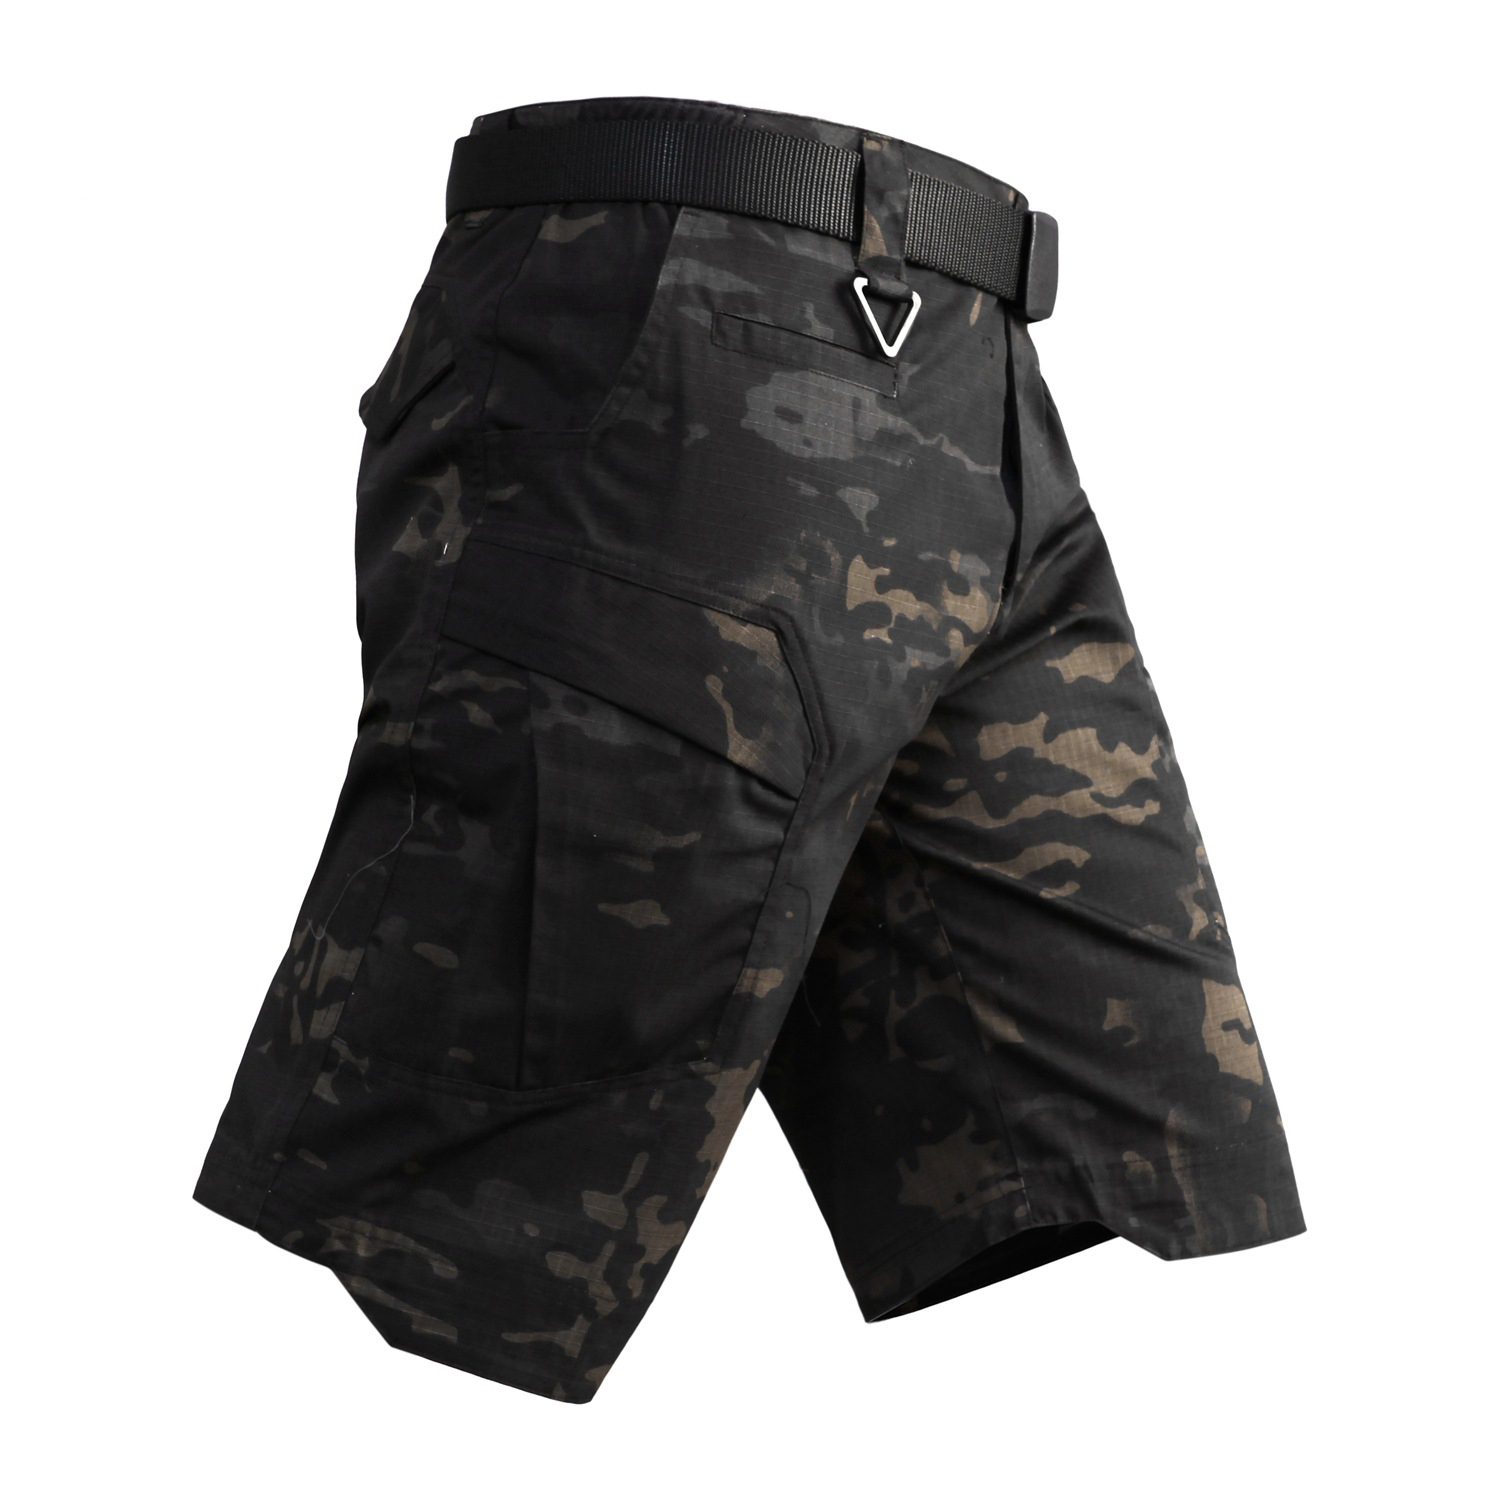 2019 Summer Men Quick Dry/Waterproof Tactical Shorts For Outdoor/Hiking Shorts Men's Sports Shorts Trekking/Fishing